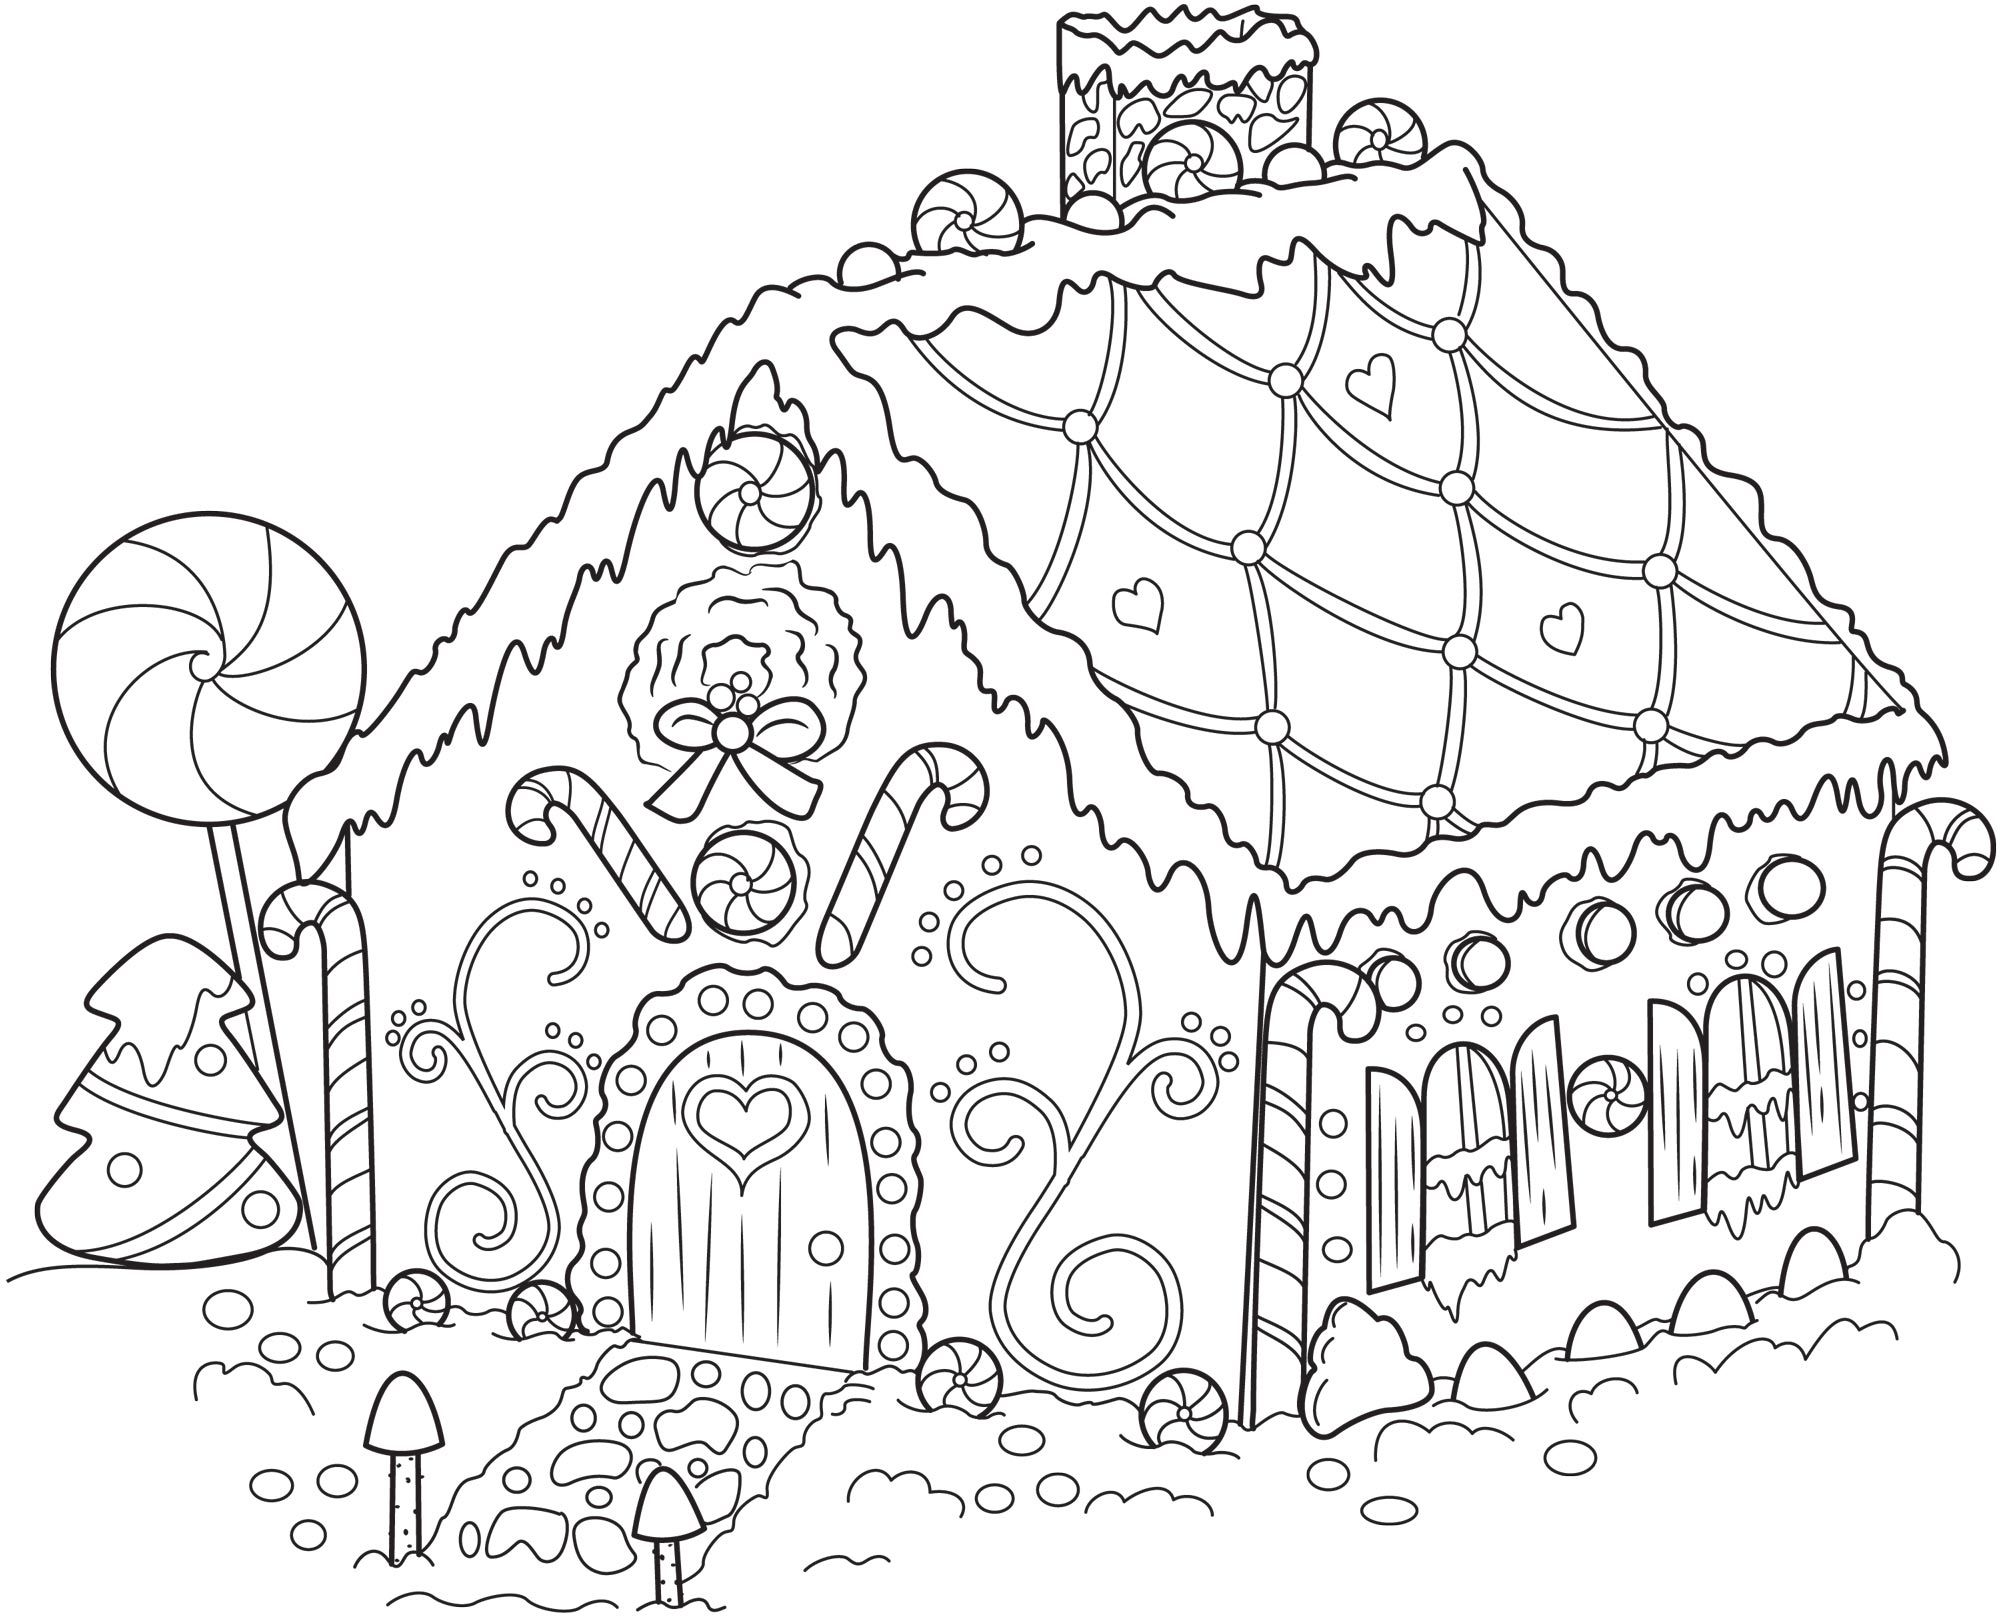 Free Christmas Coloring Pages Gingerbread House With Dog Patterns Pinterest